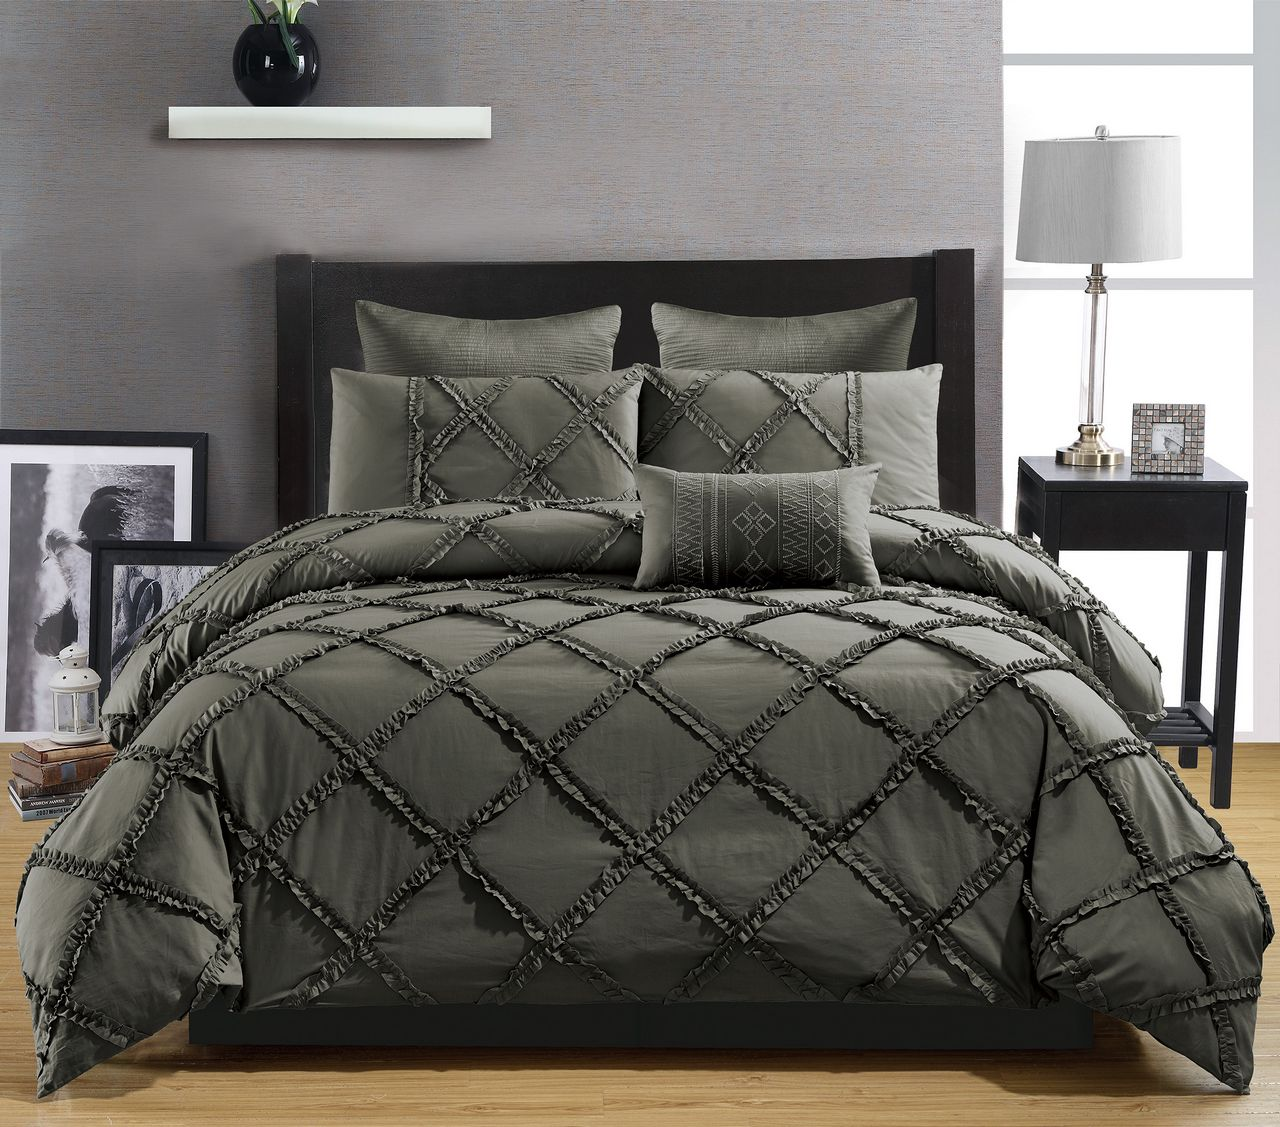 bedding size kitchen pieces bed set in a x beige com green king amazon bag comforter brown and stripe queen dp luxury home